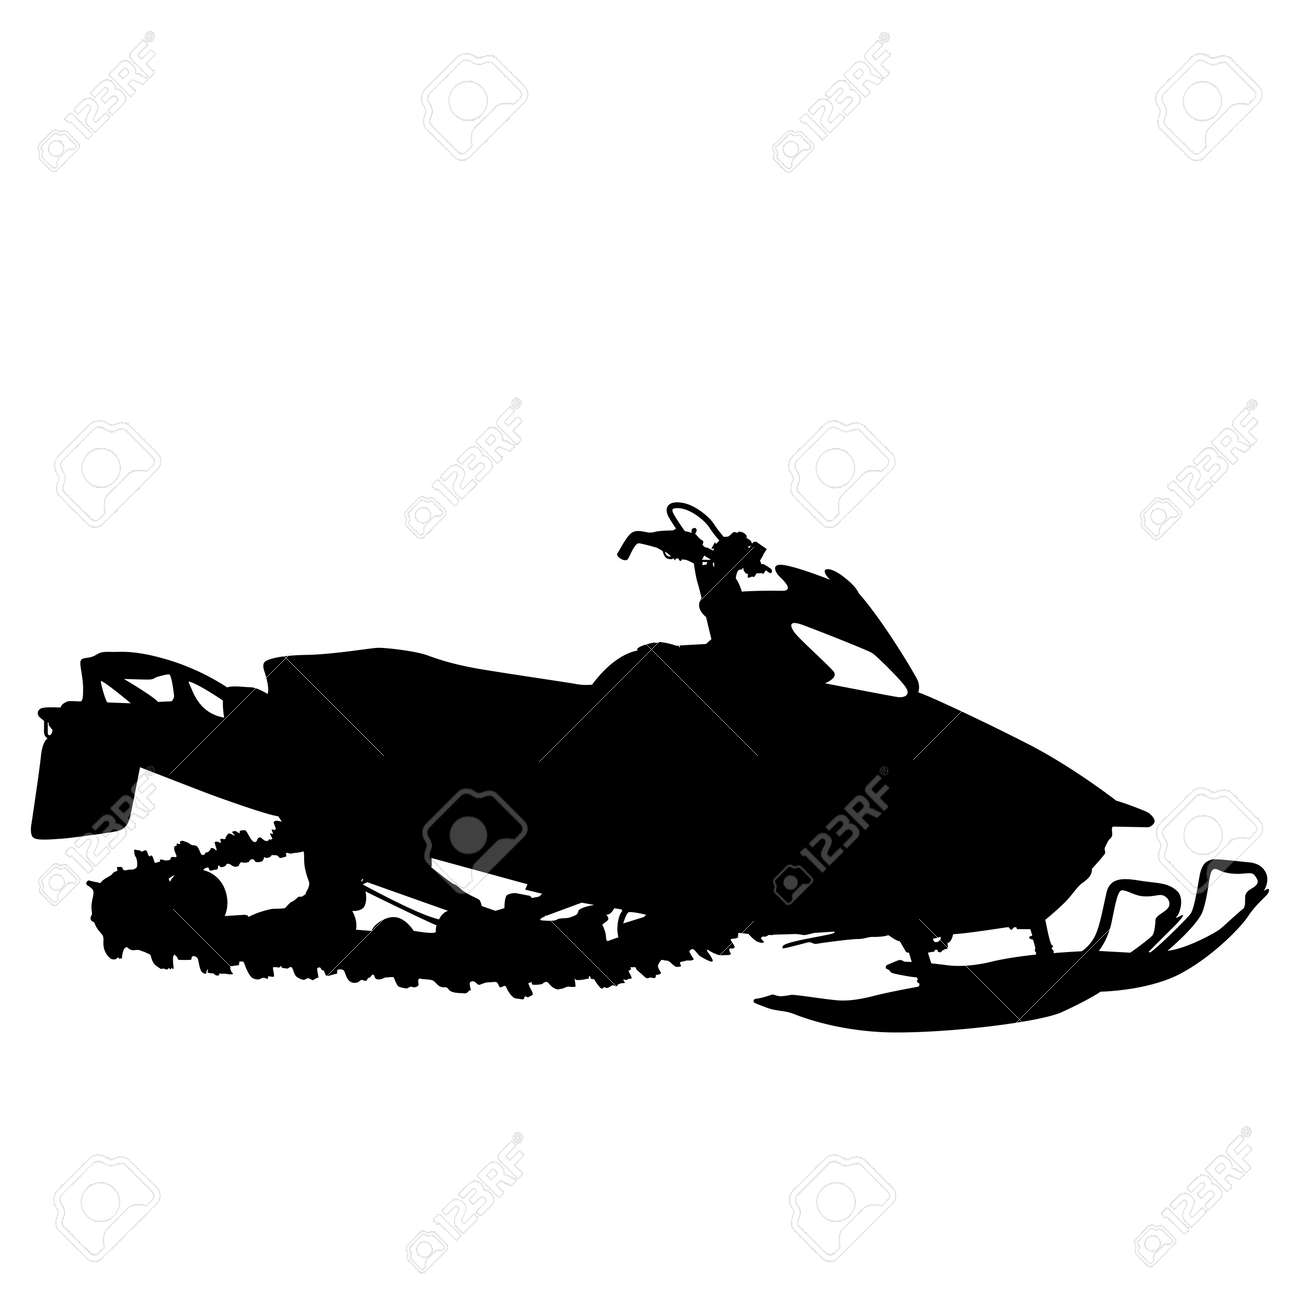 155 Snowmobiling Stock Vector Illustration And Royalty Free ...